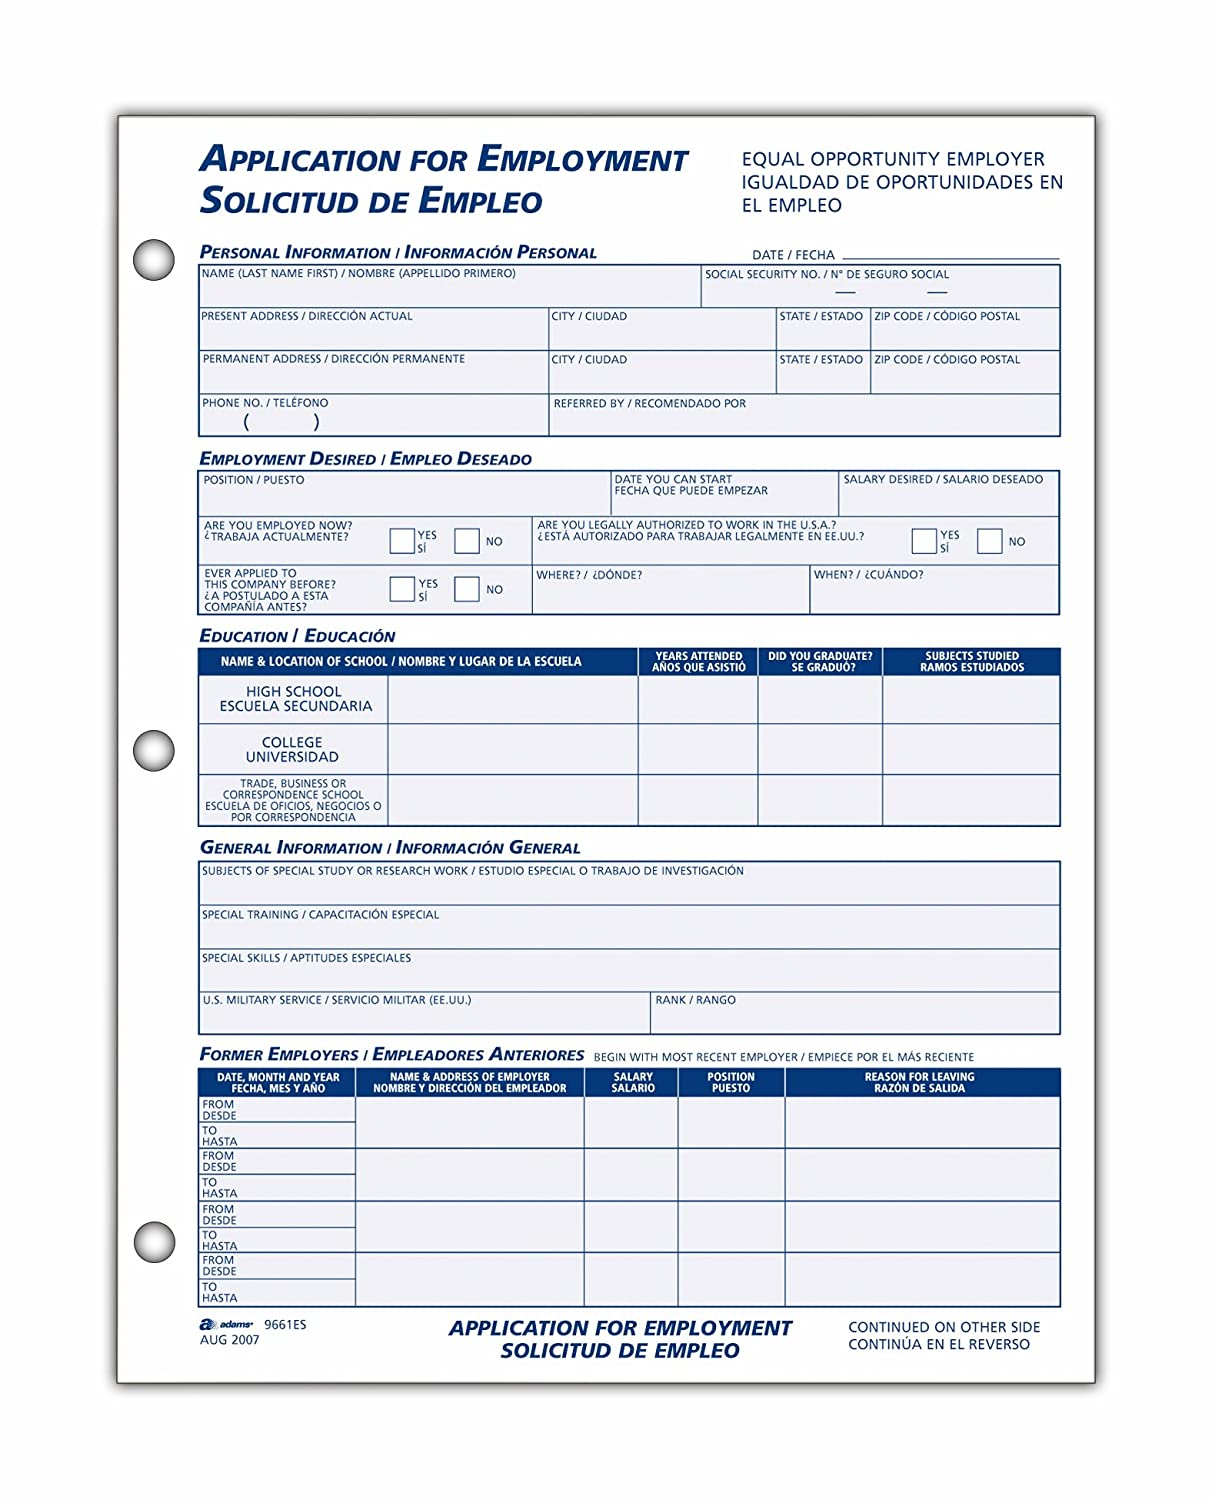 Amazon Adams Bilingual Employee Application 85 x 11 Inches – Application for Employment